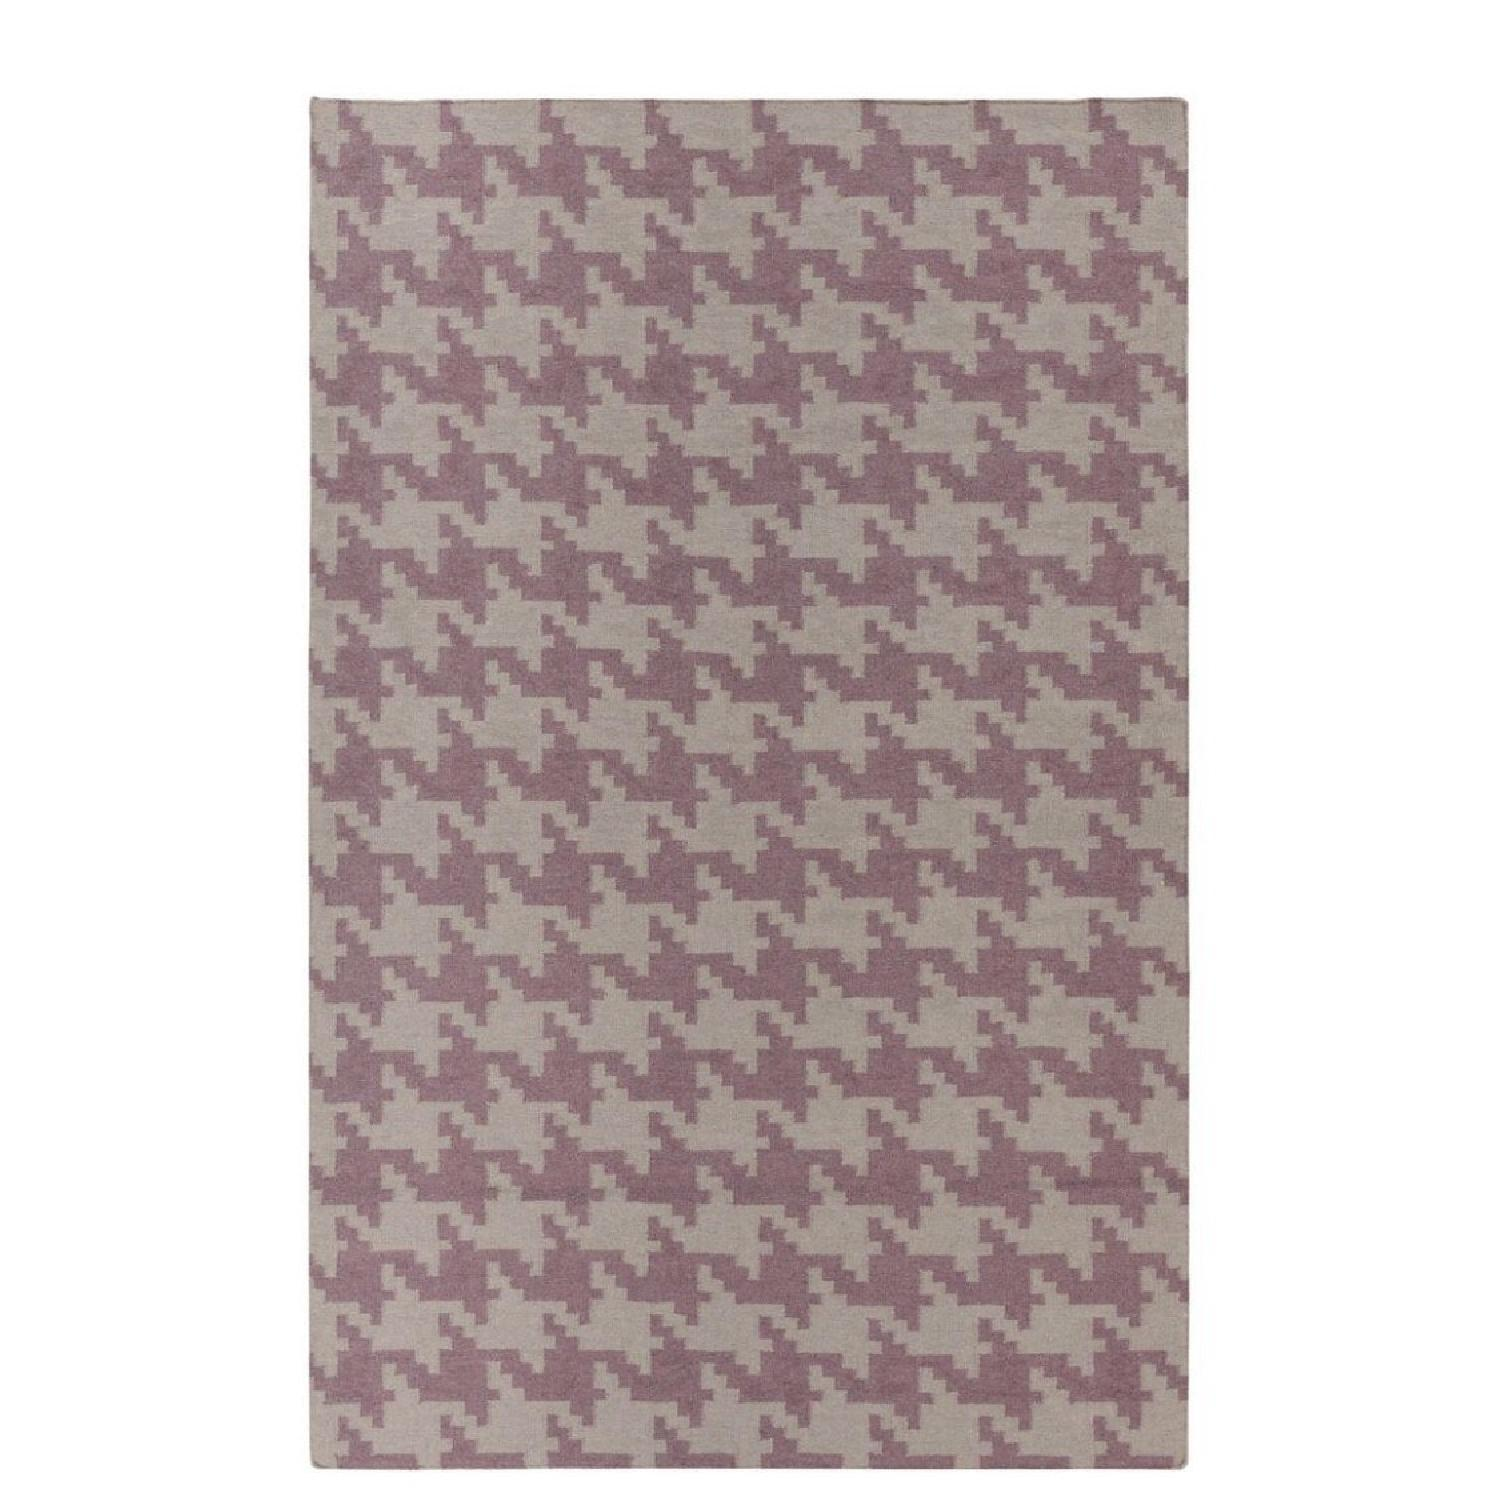 Hand Woven Houndstooth Lyons Rug - image-1